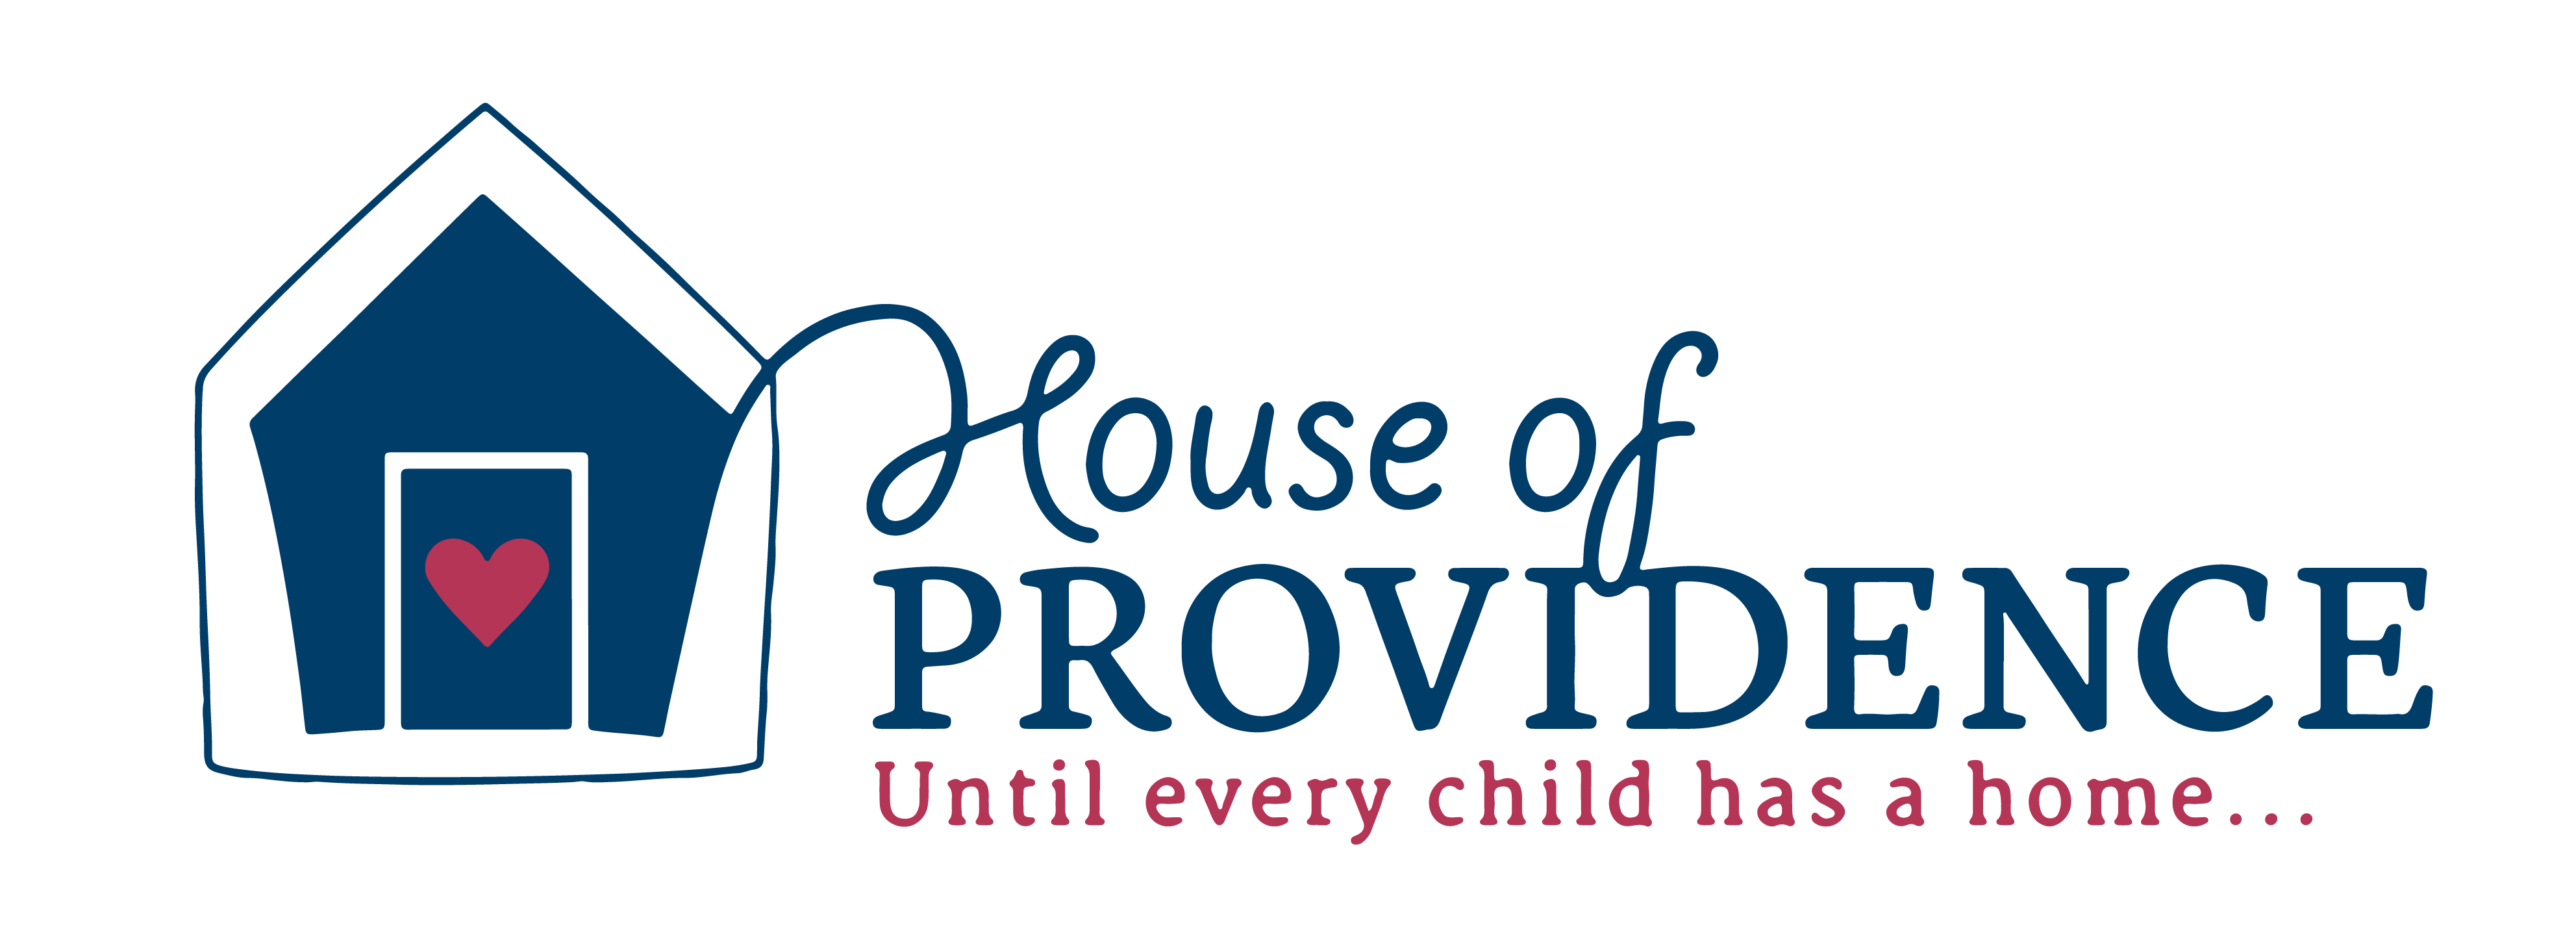 House of Providence Home for At Risk Children